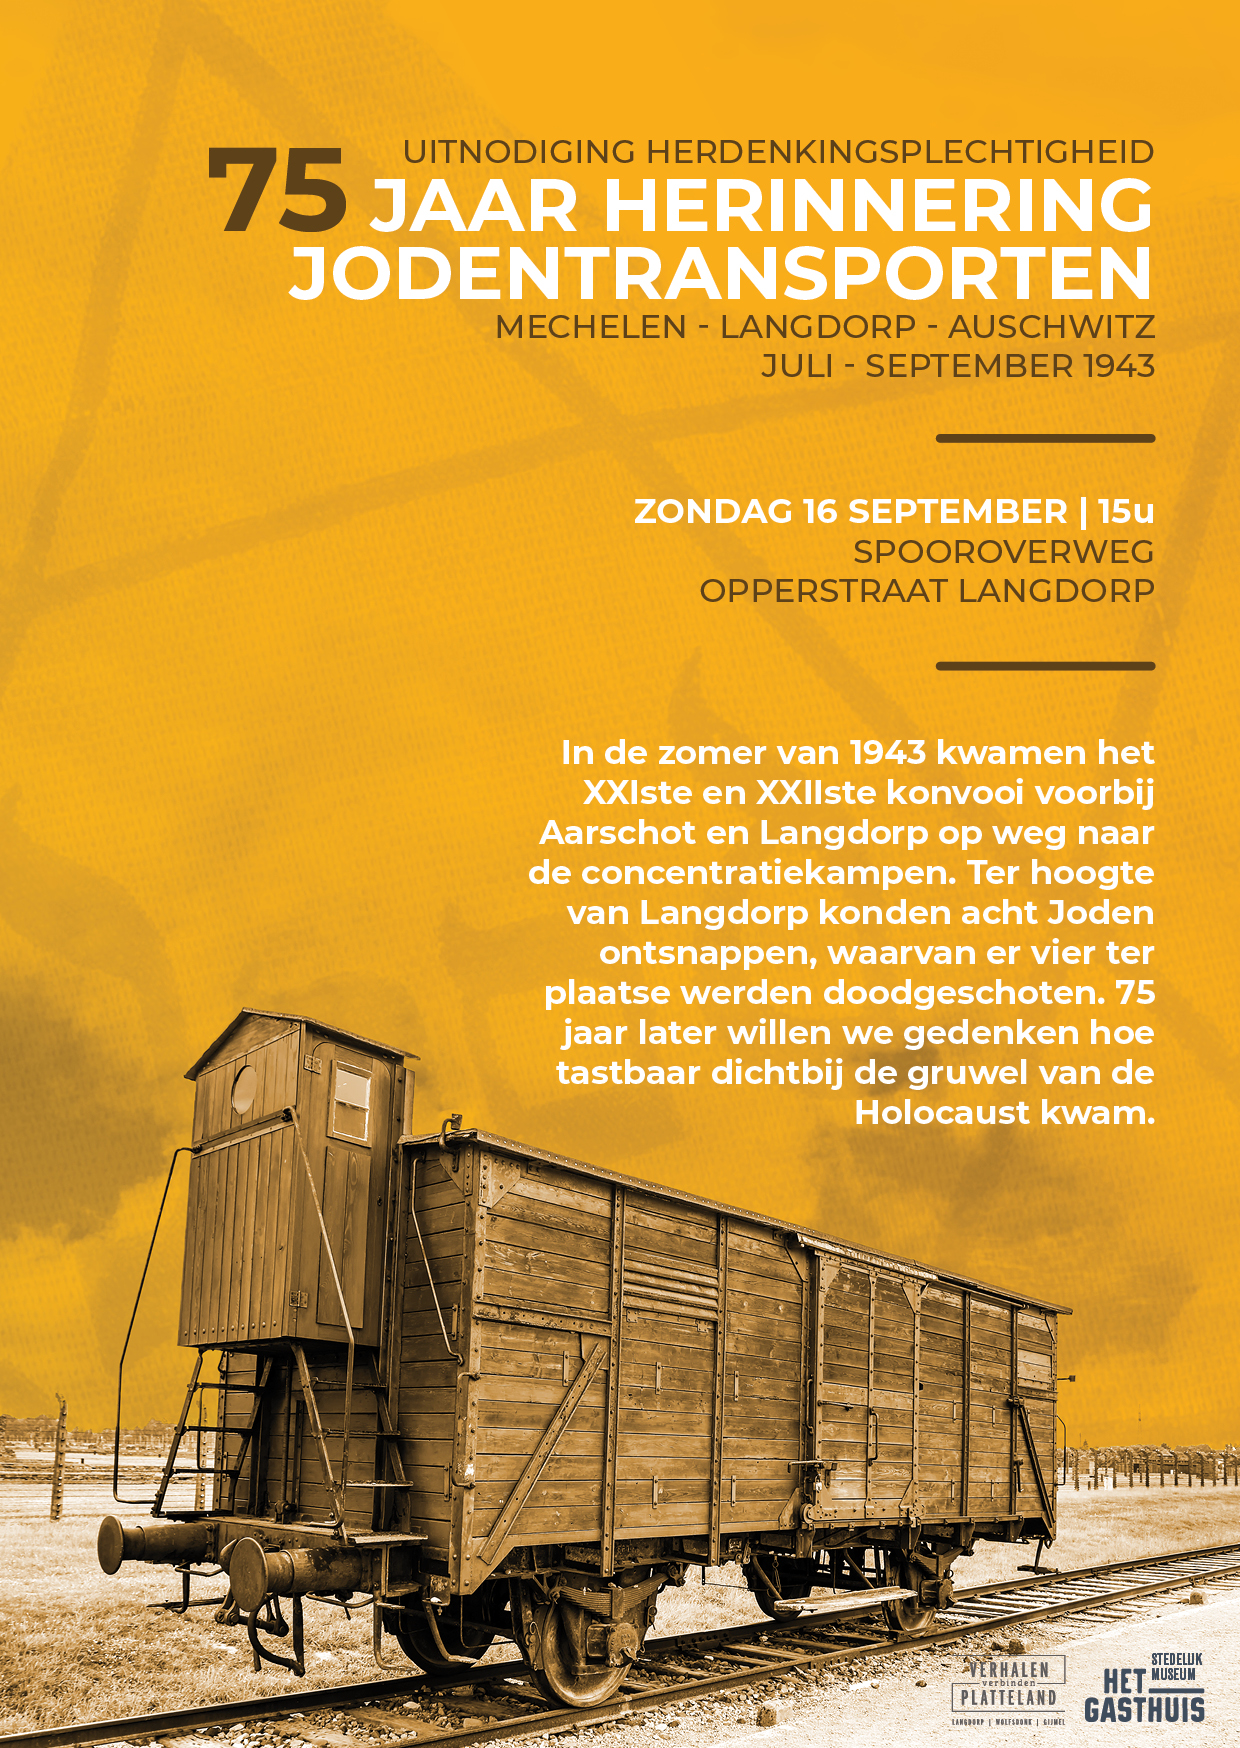 herdenking jodentransport 5